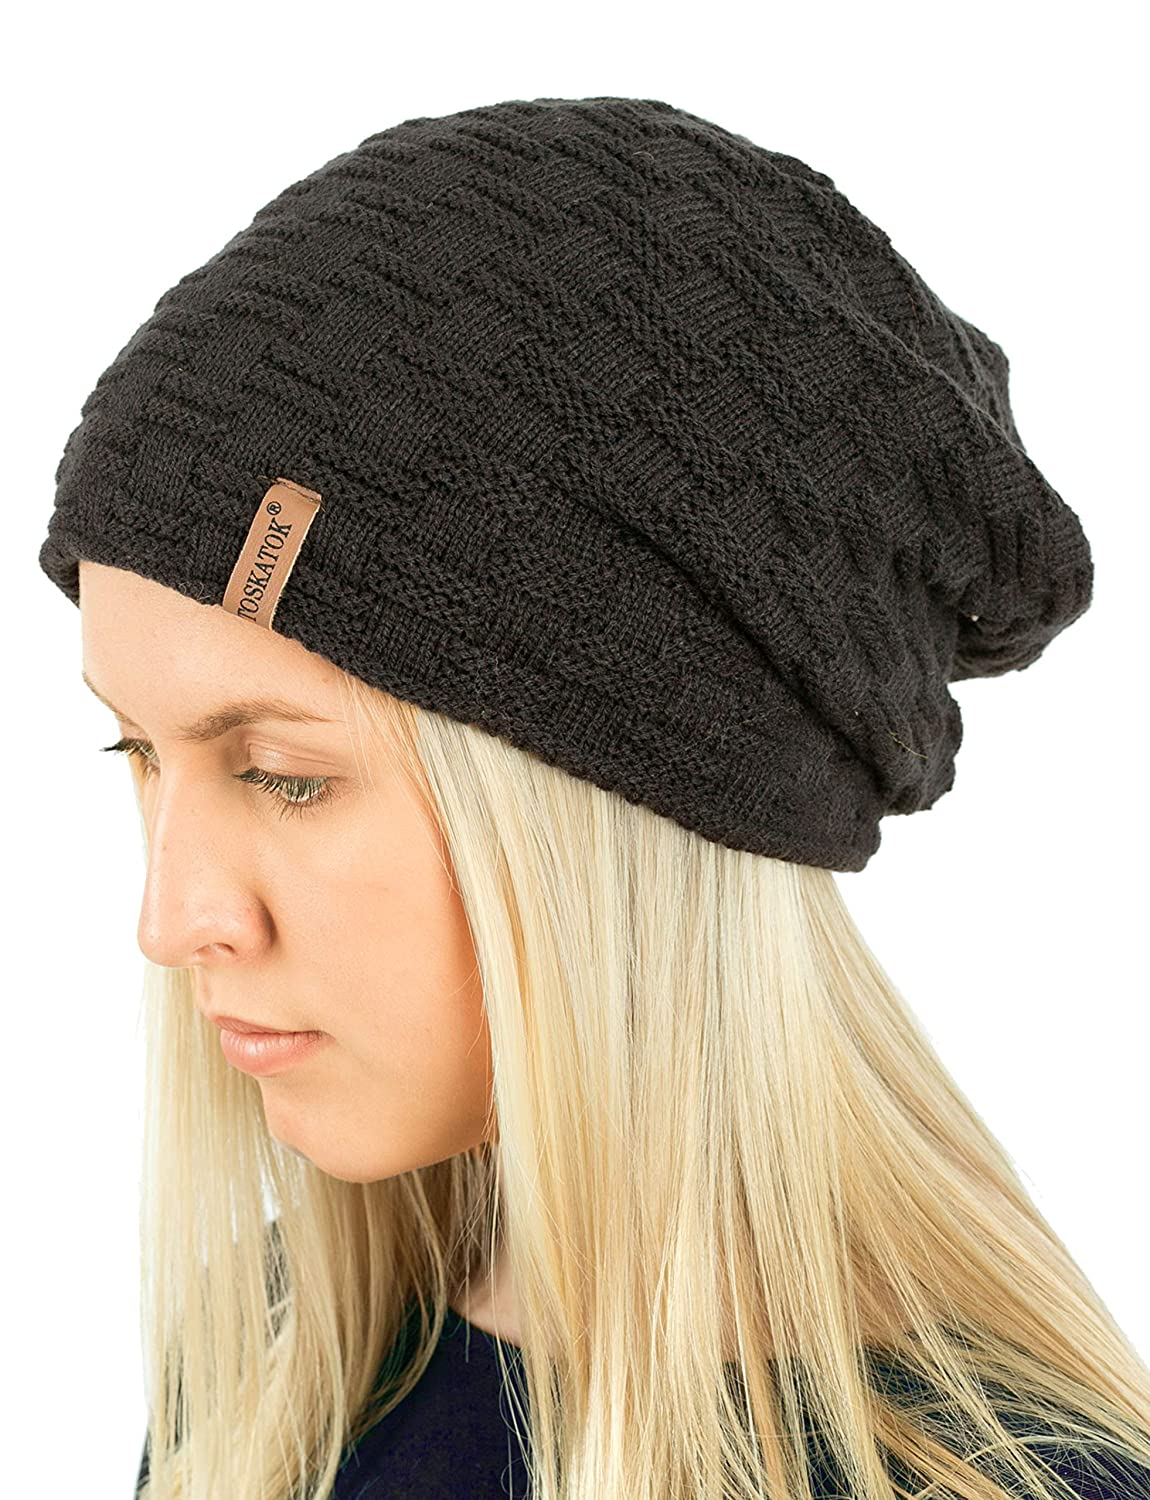 TOSKATOK® Ladies Mens Unisex Warm Winter Textured Knit Slouch Beanie hat with Cosy Faux Fur Teddy Fleece Liner